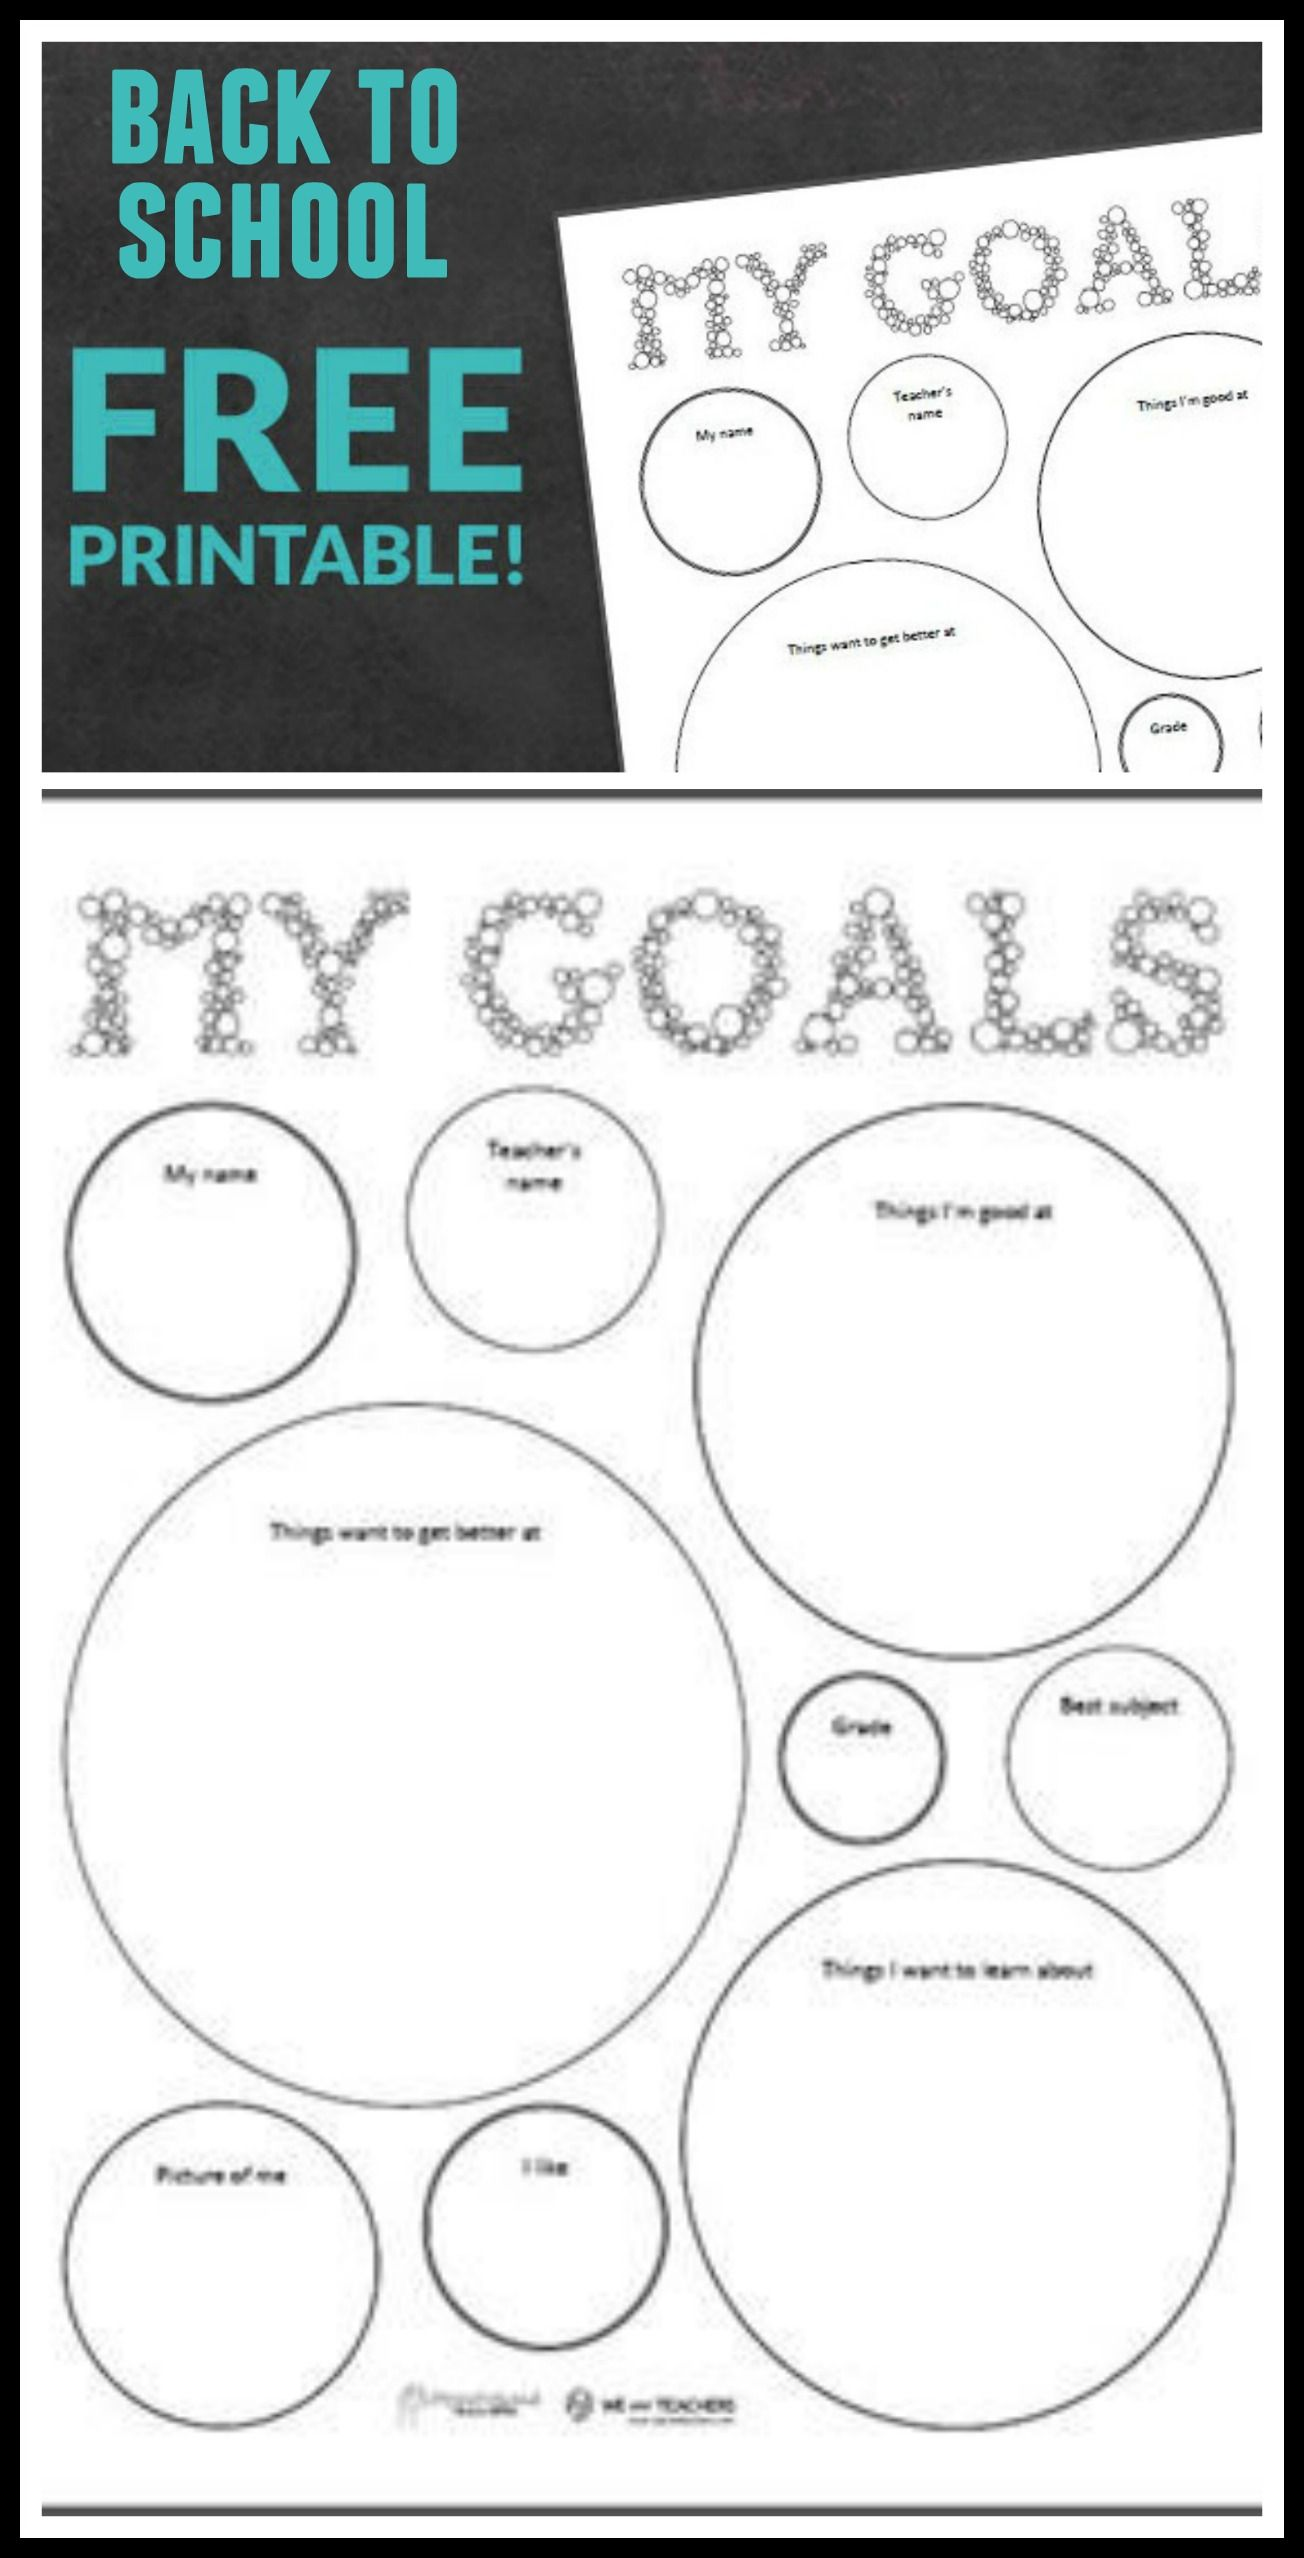 Free Printable Back To School Goal Setting